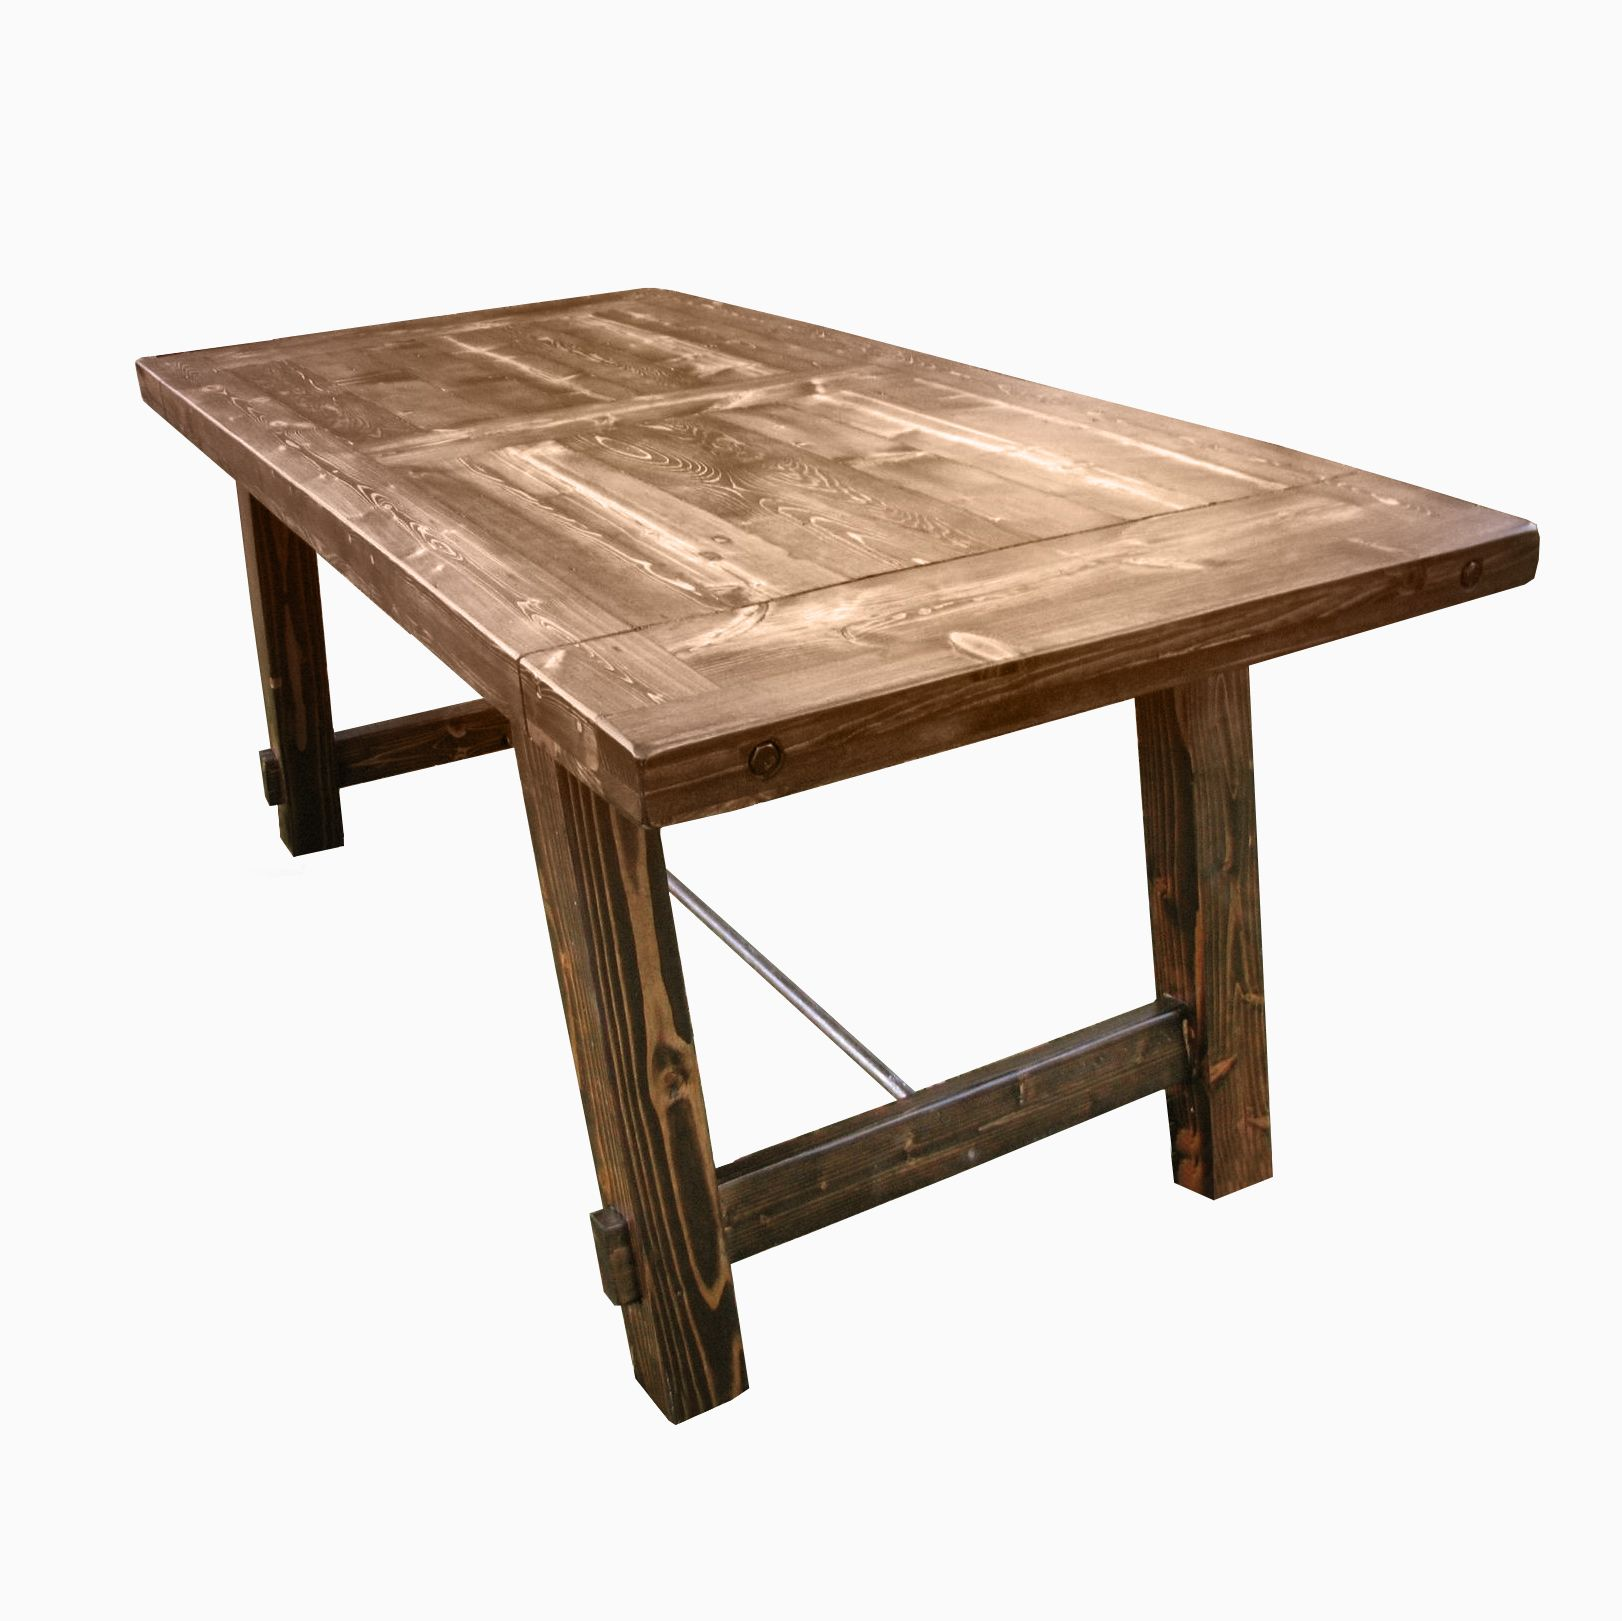 Buy A Custom Country Harvest Dining Table, Made To Order